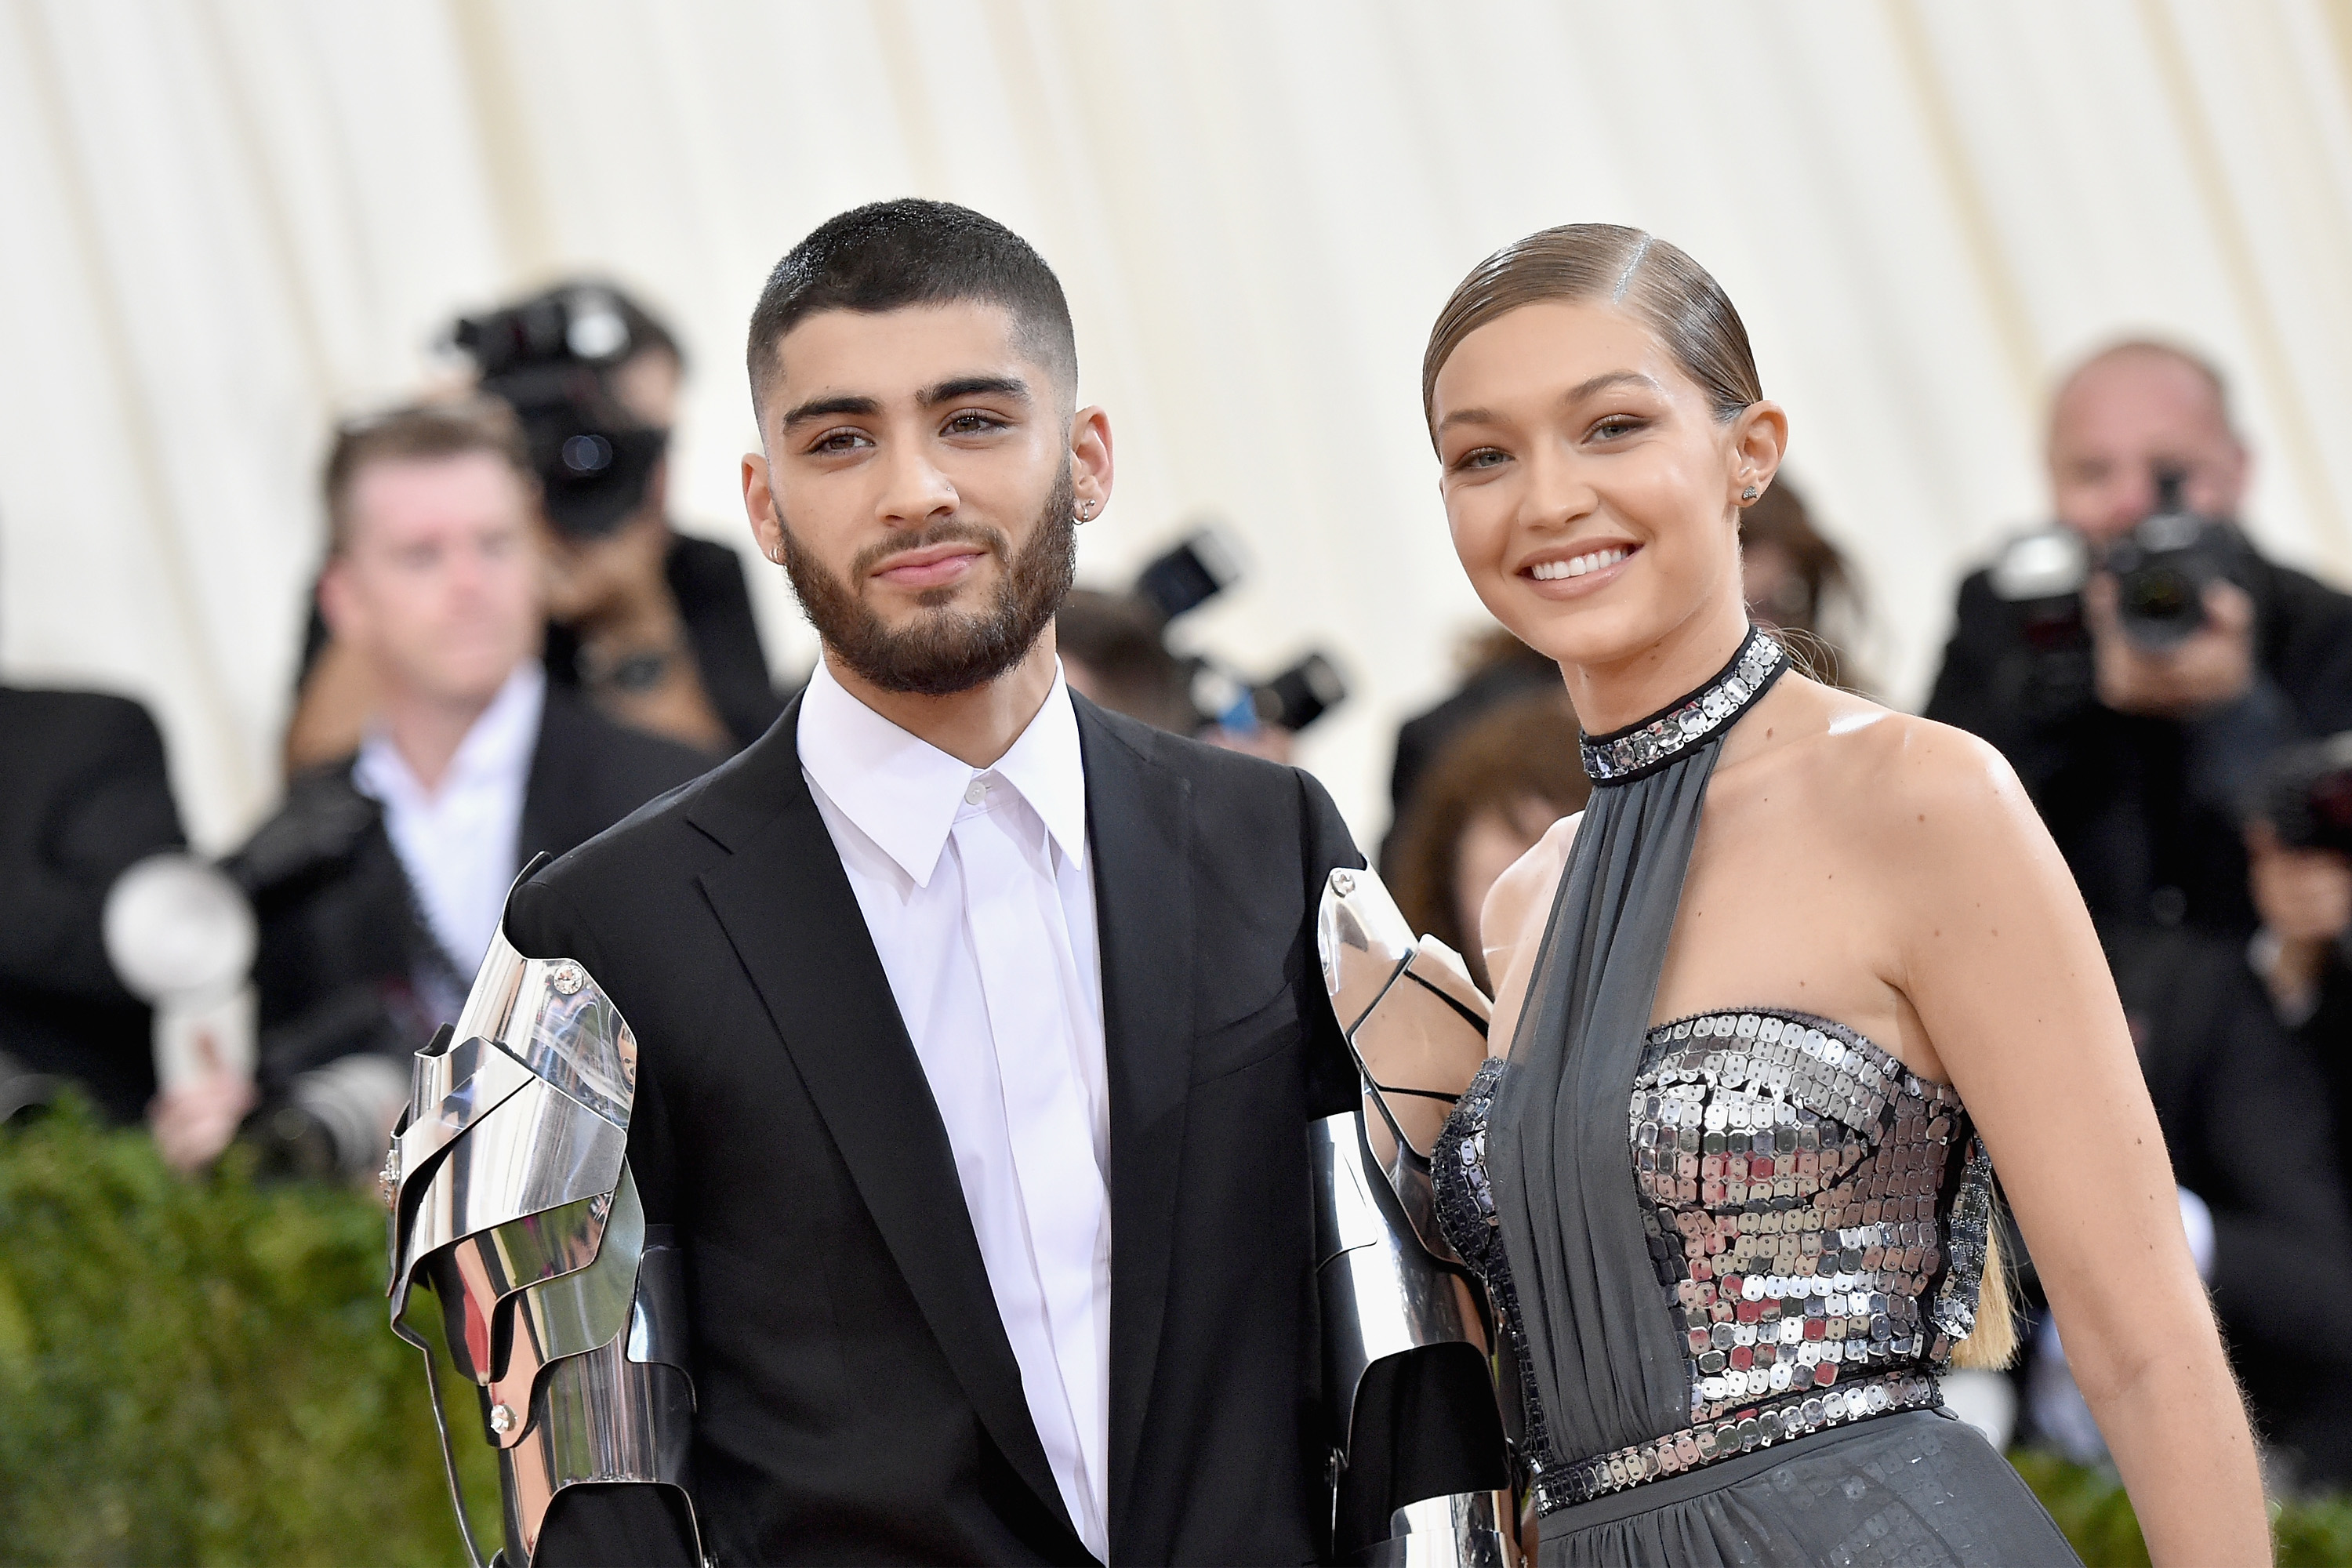 Gigi Hadid and Zayn Malik Just Made Their Reunion Instagram Official